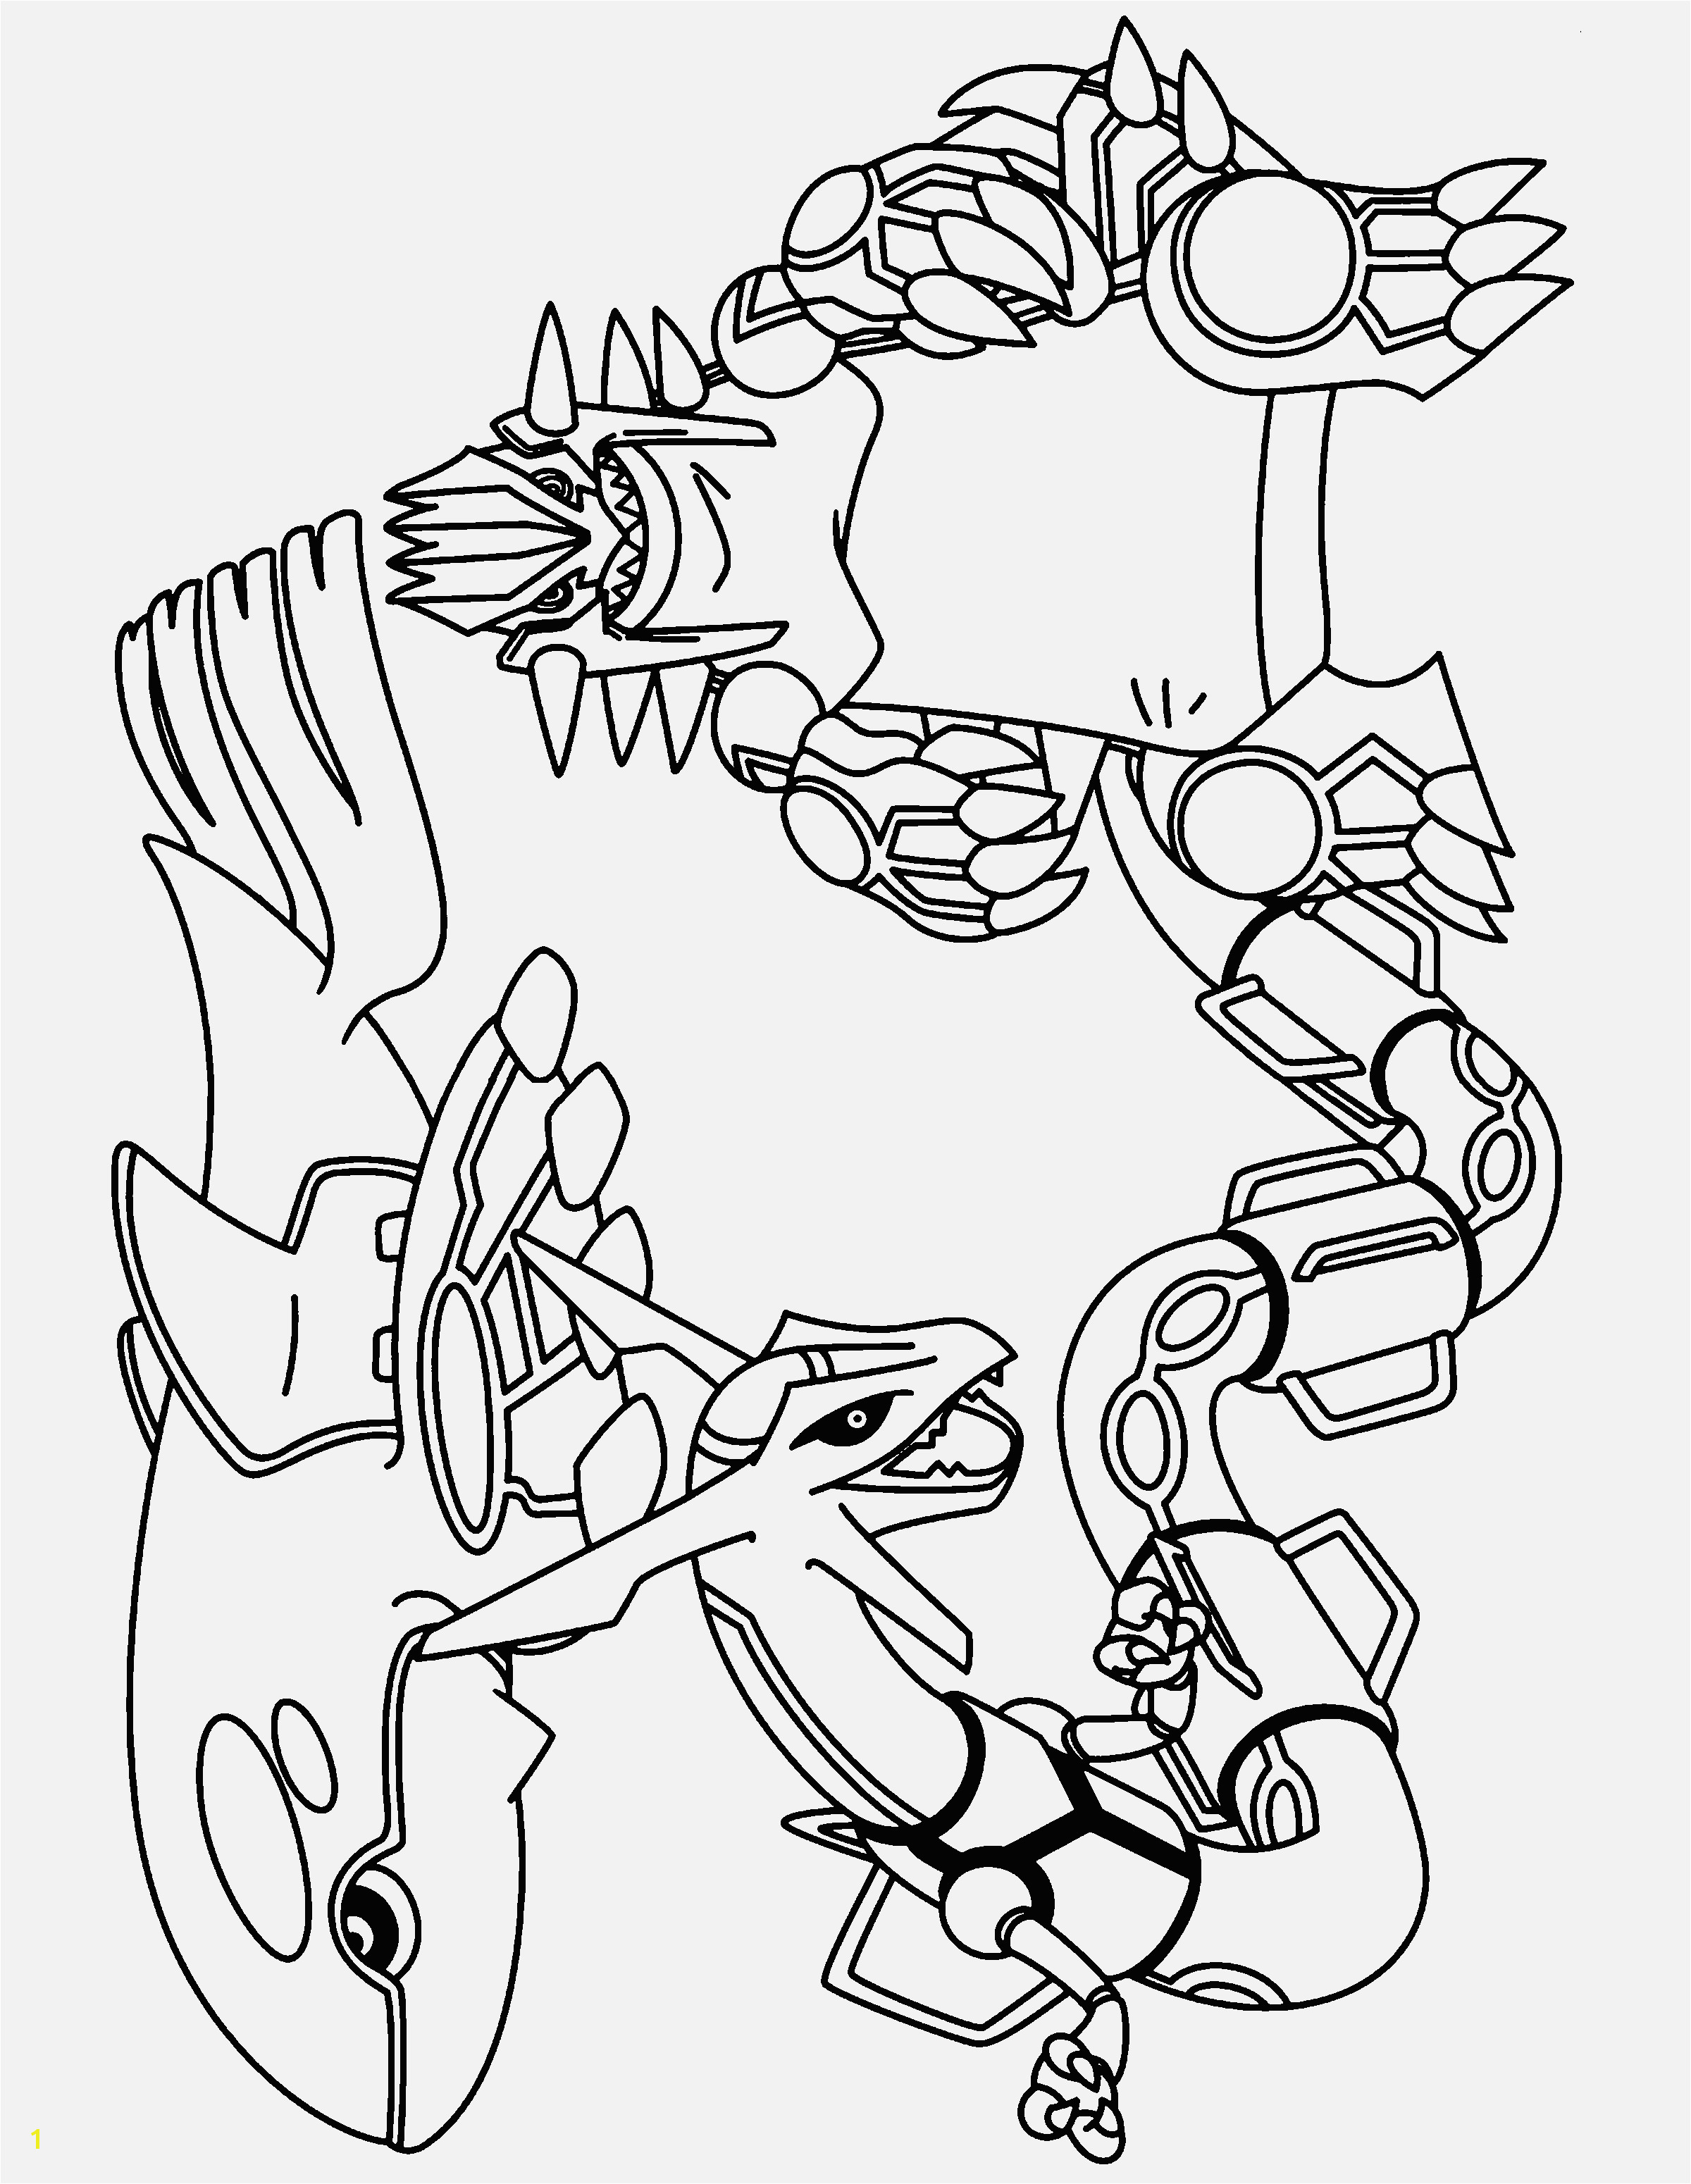 Blastoise Coloring Page Easy and Fun Blastoise Coloring Page Awesome tortank Pokemonkleurplaten